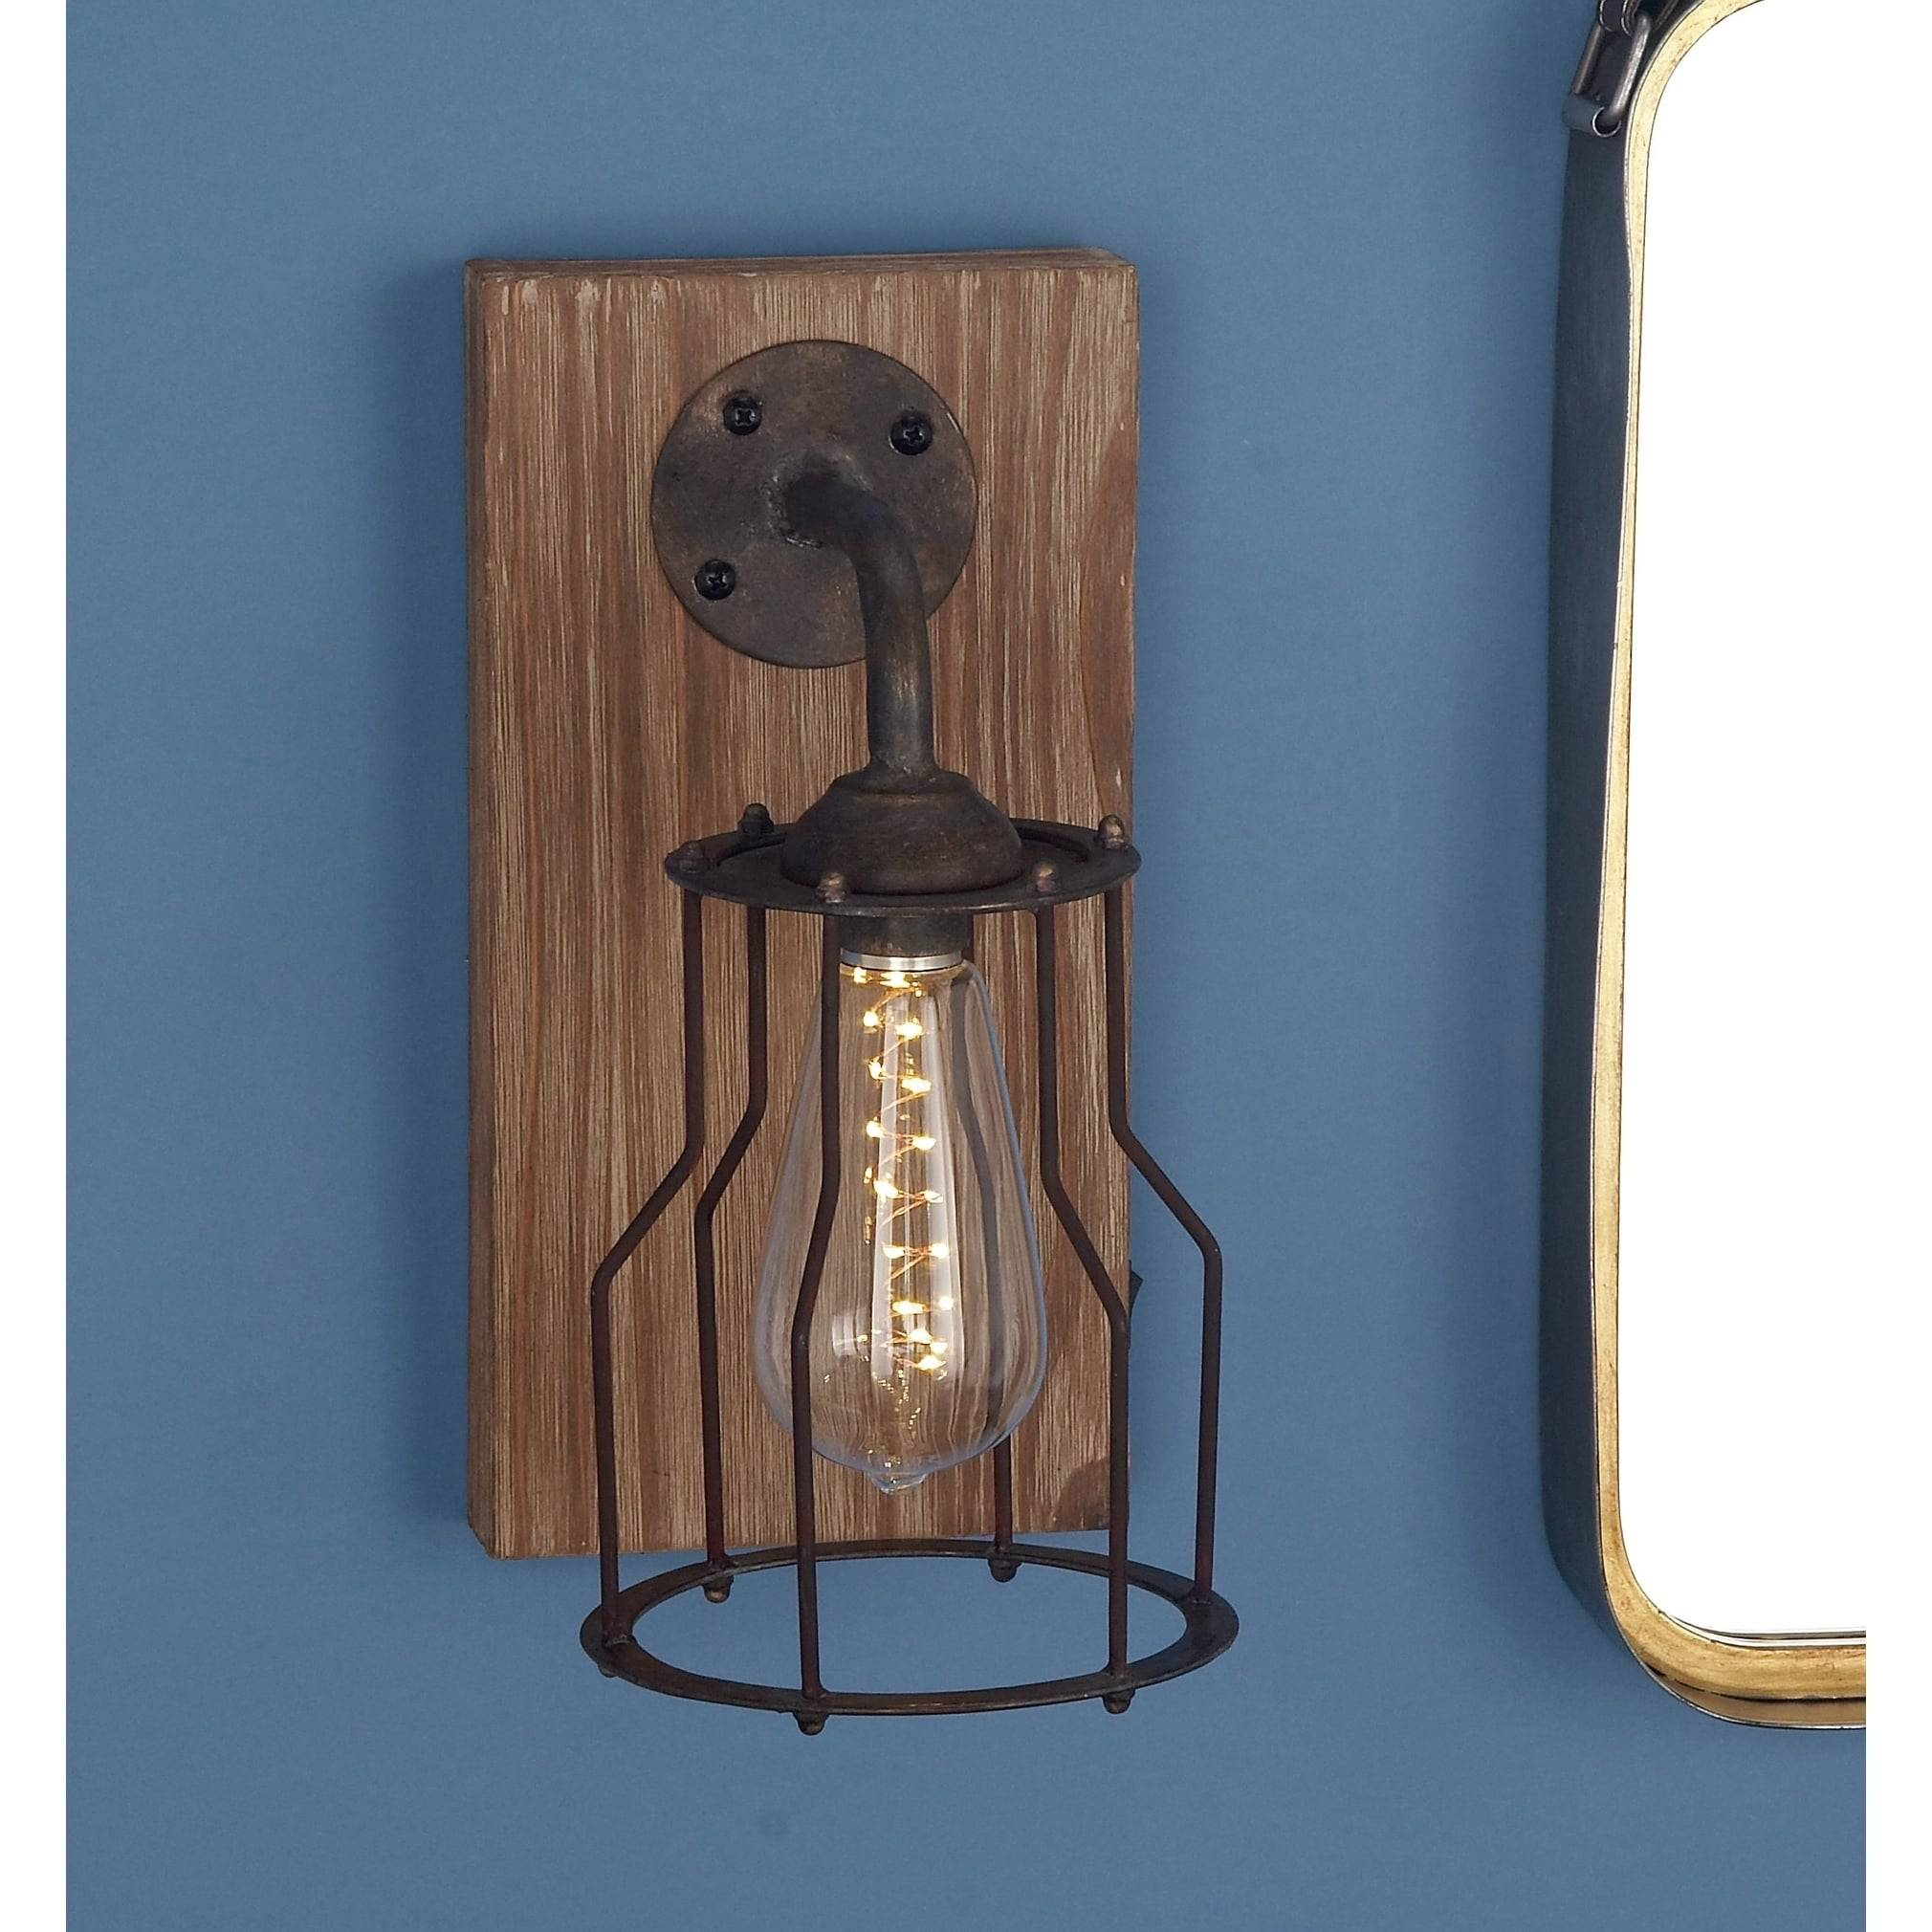 Farmhouse 11 x 6 Inch Wood and Metal Gl LED Wall Sconce by Studio 350 cb587a0e 2d5a 45f3 b68b a0e5d d